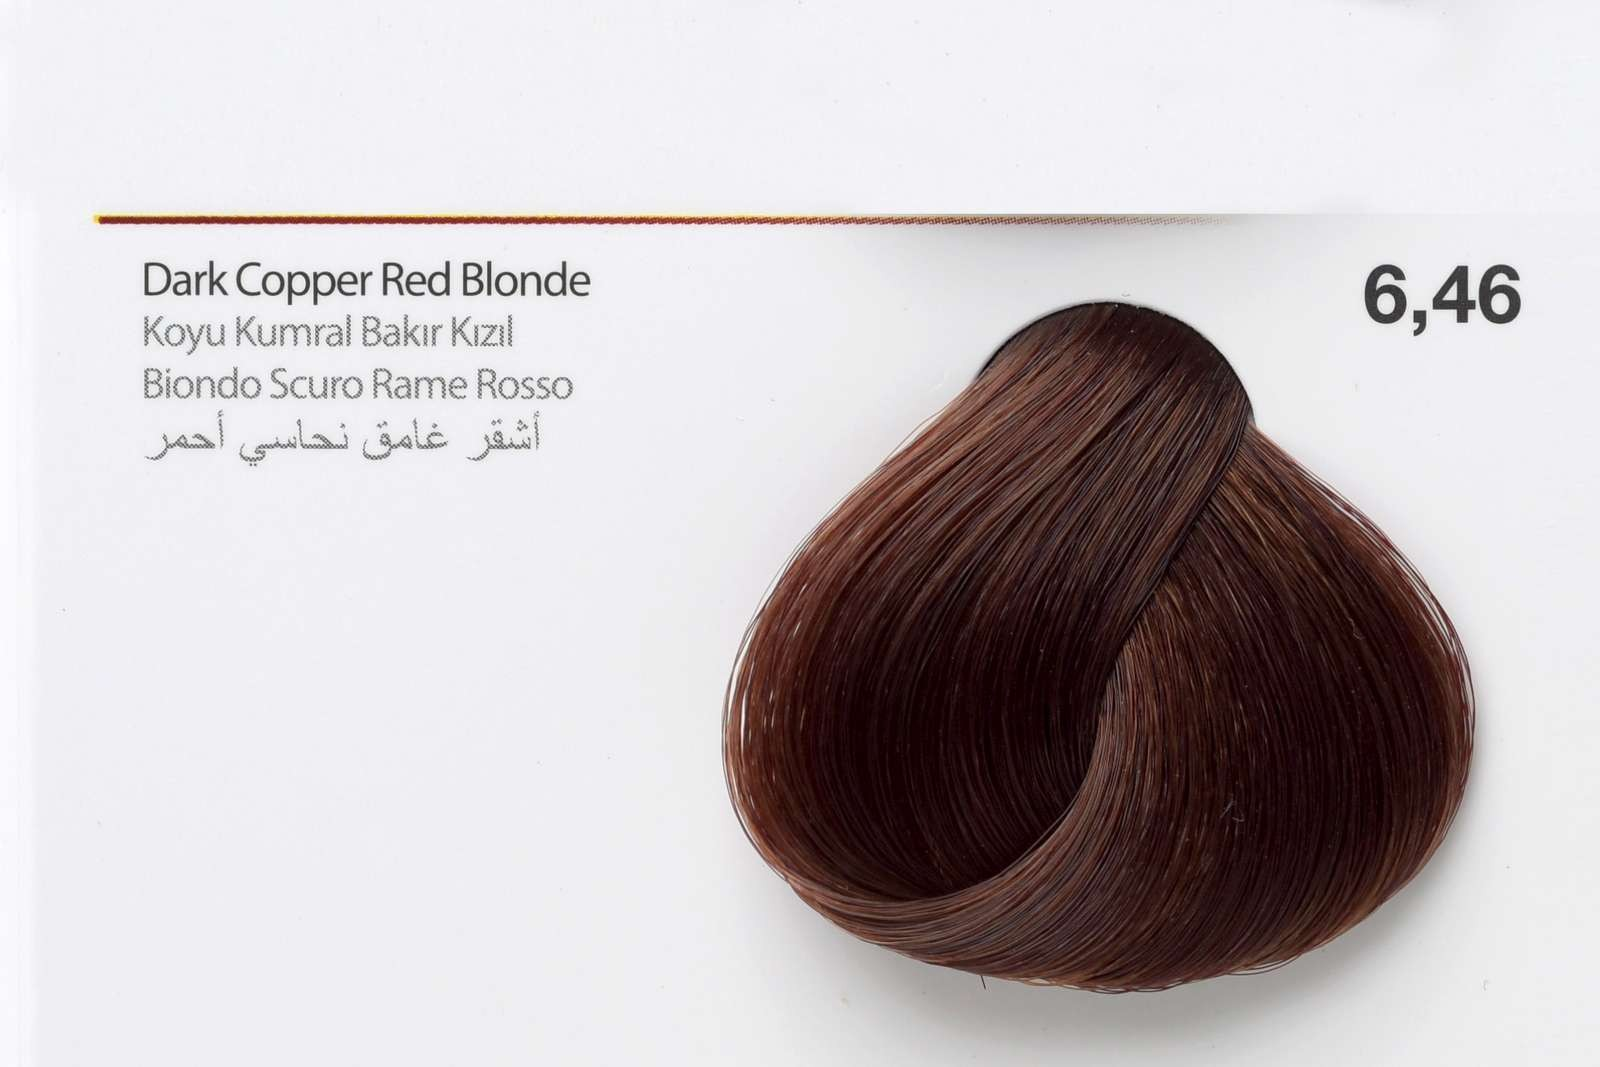 6,46 - Dark Copper Red Blonde-swatch